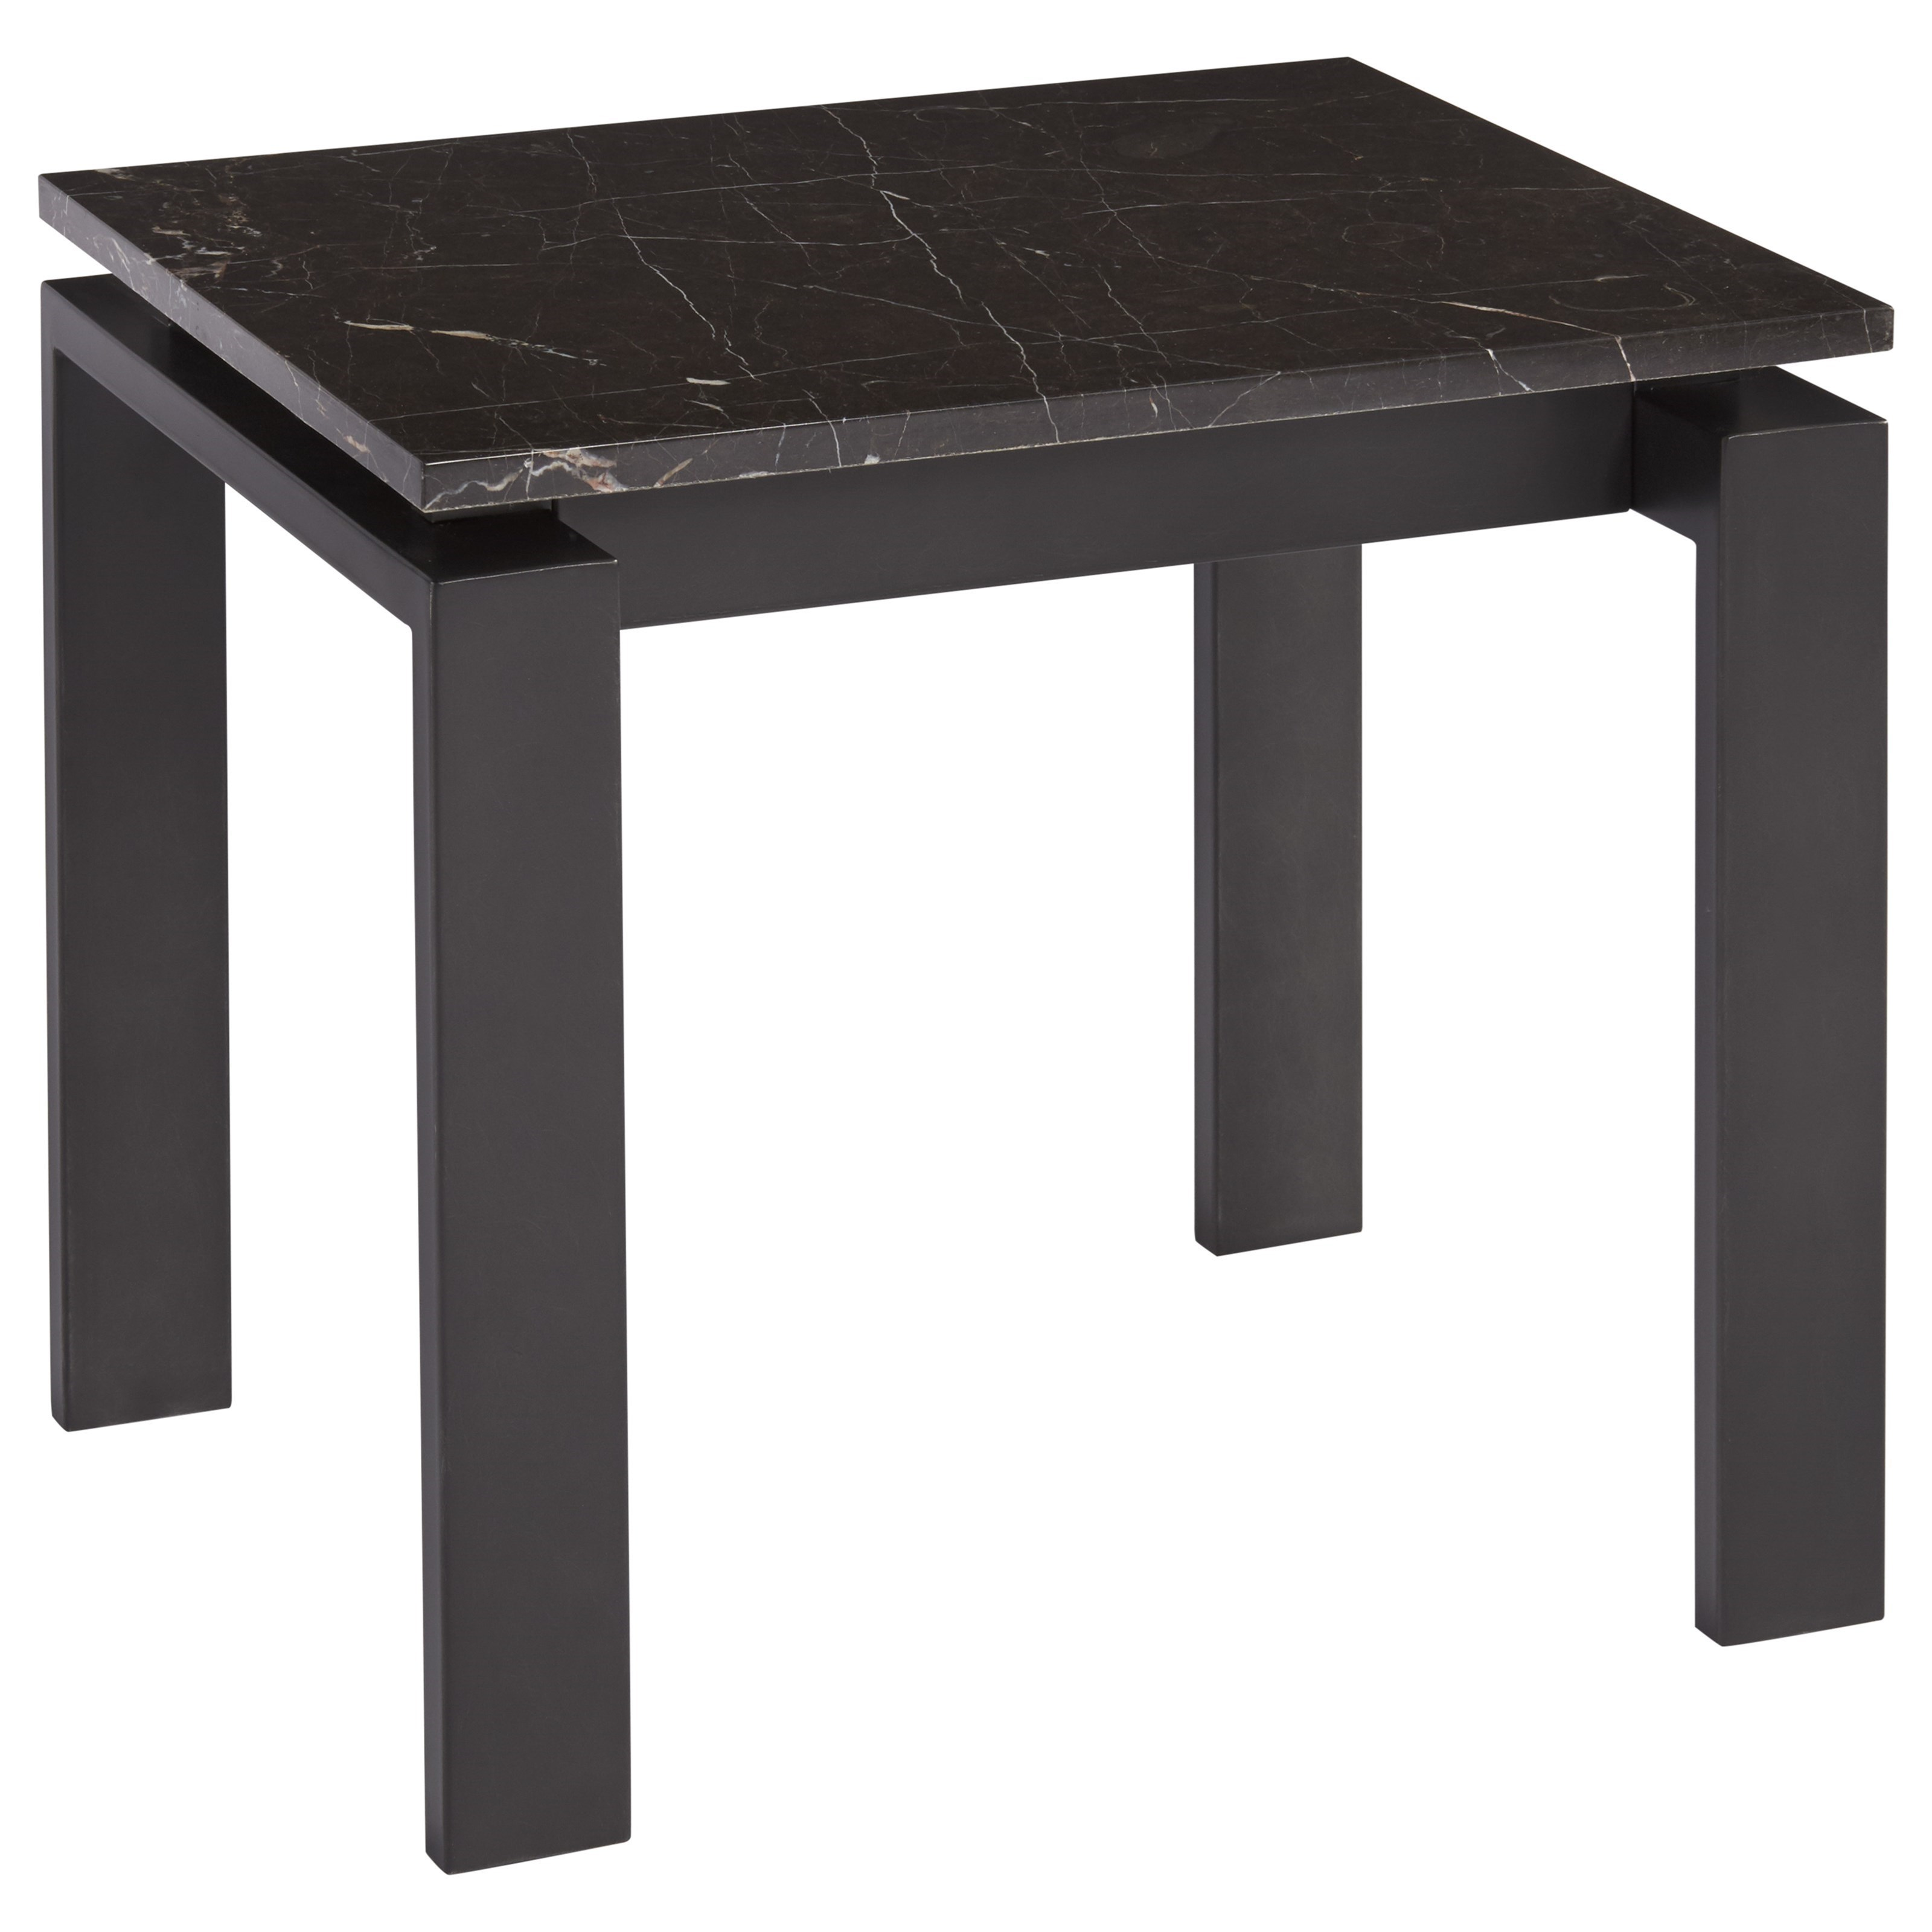 Spaces Mixed Media Vance End Table by Universal at Baer's Furniture